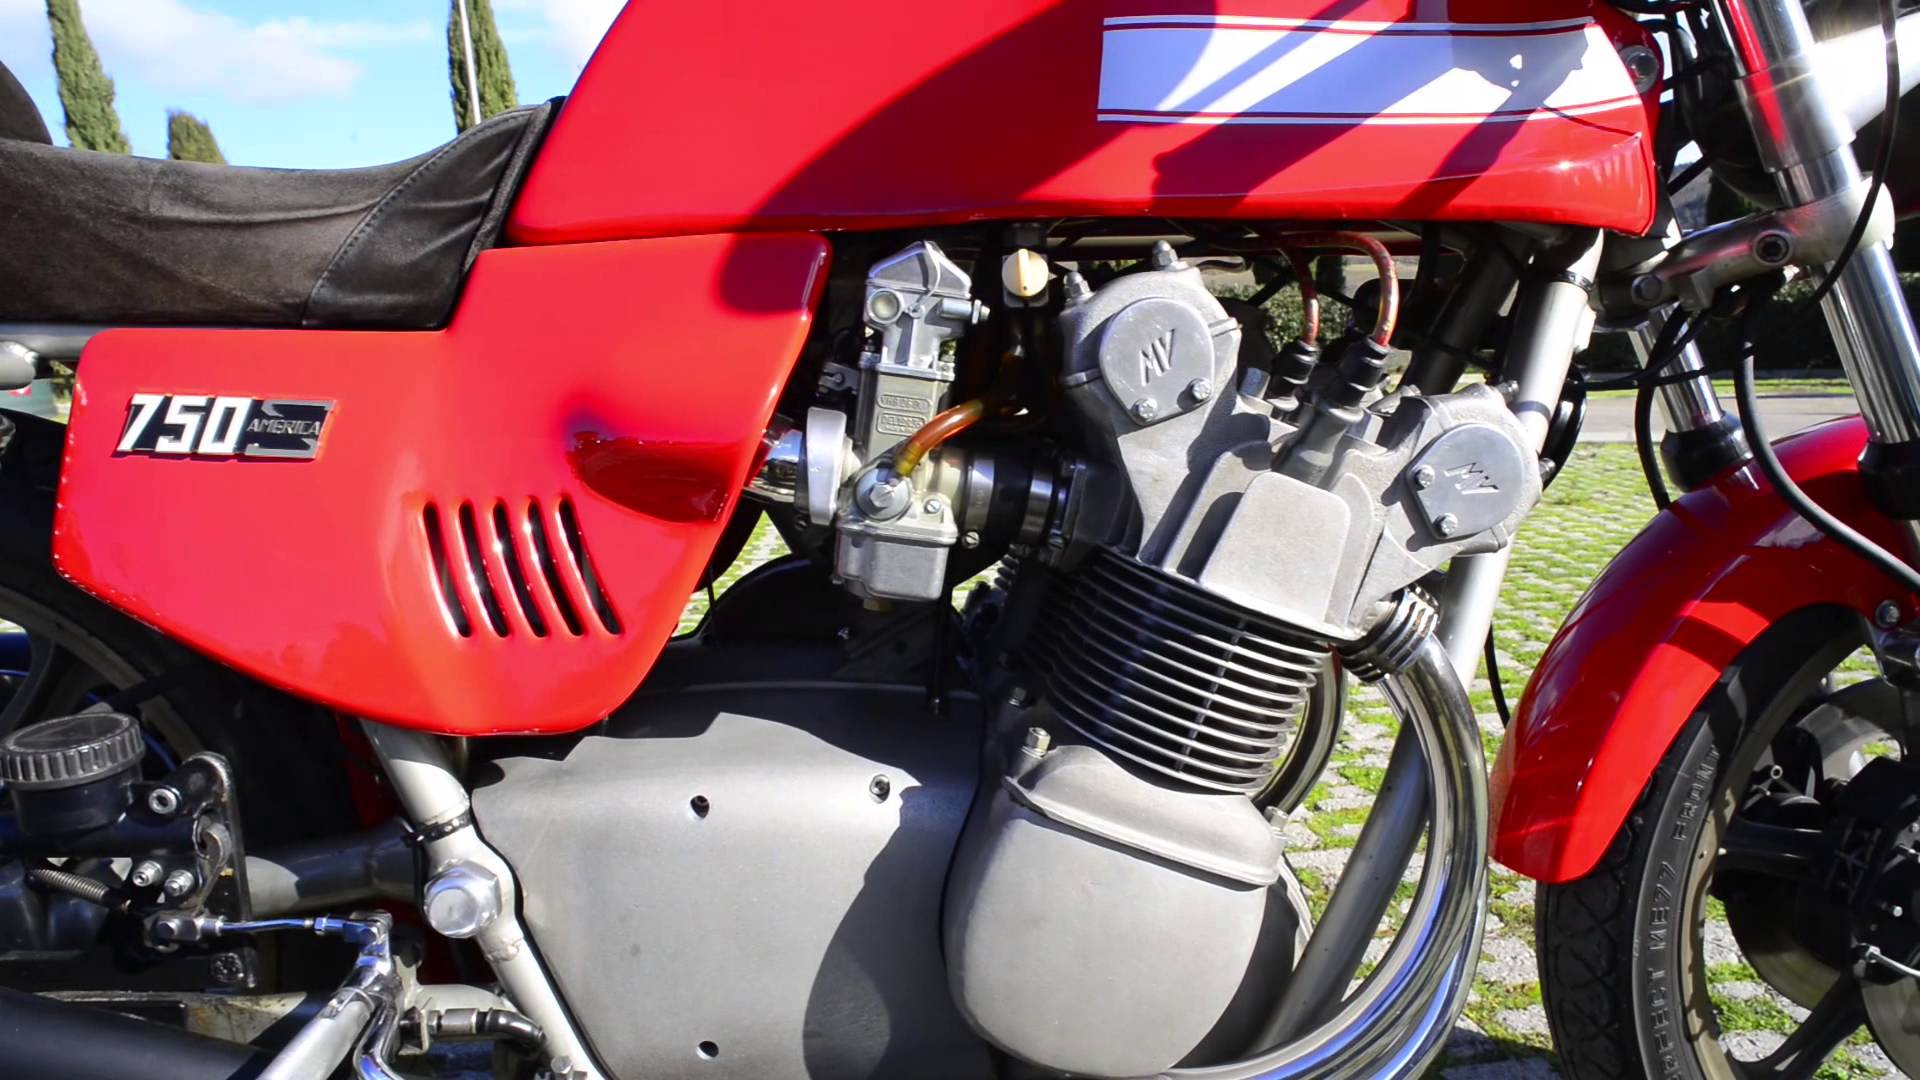 MV Agusta 750 S 1972 images #113242